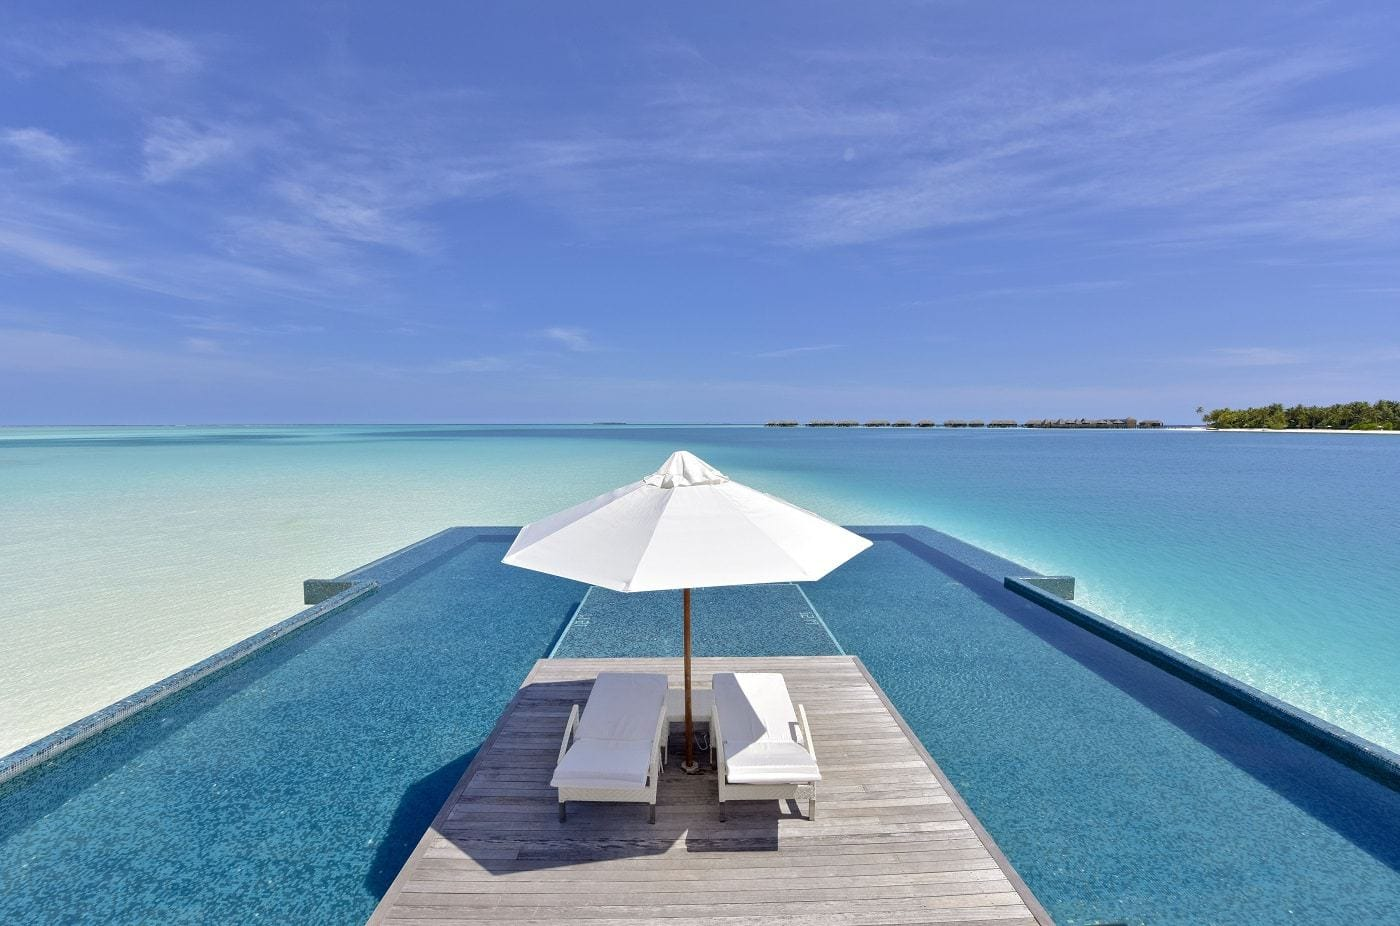 The infinity pool at conrad maldives